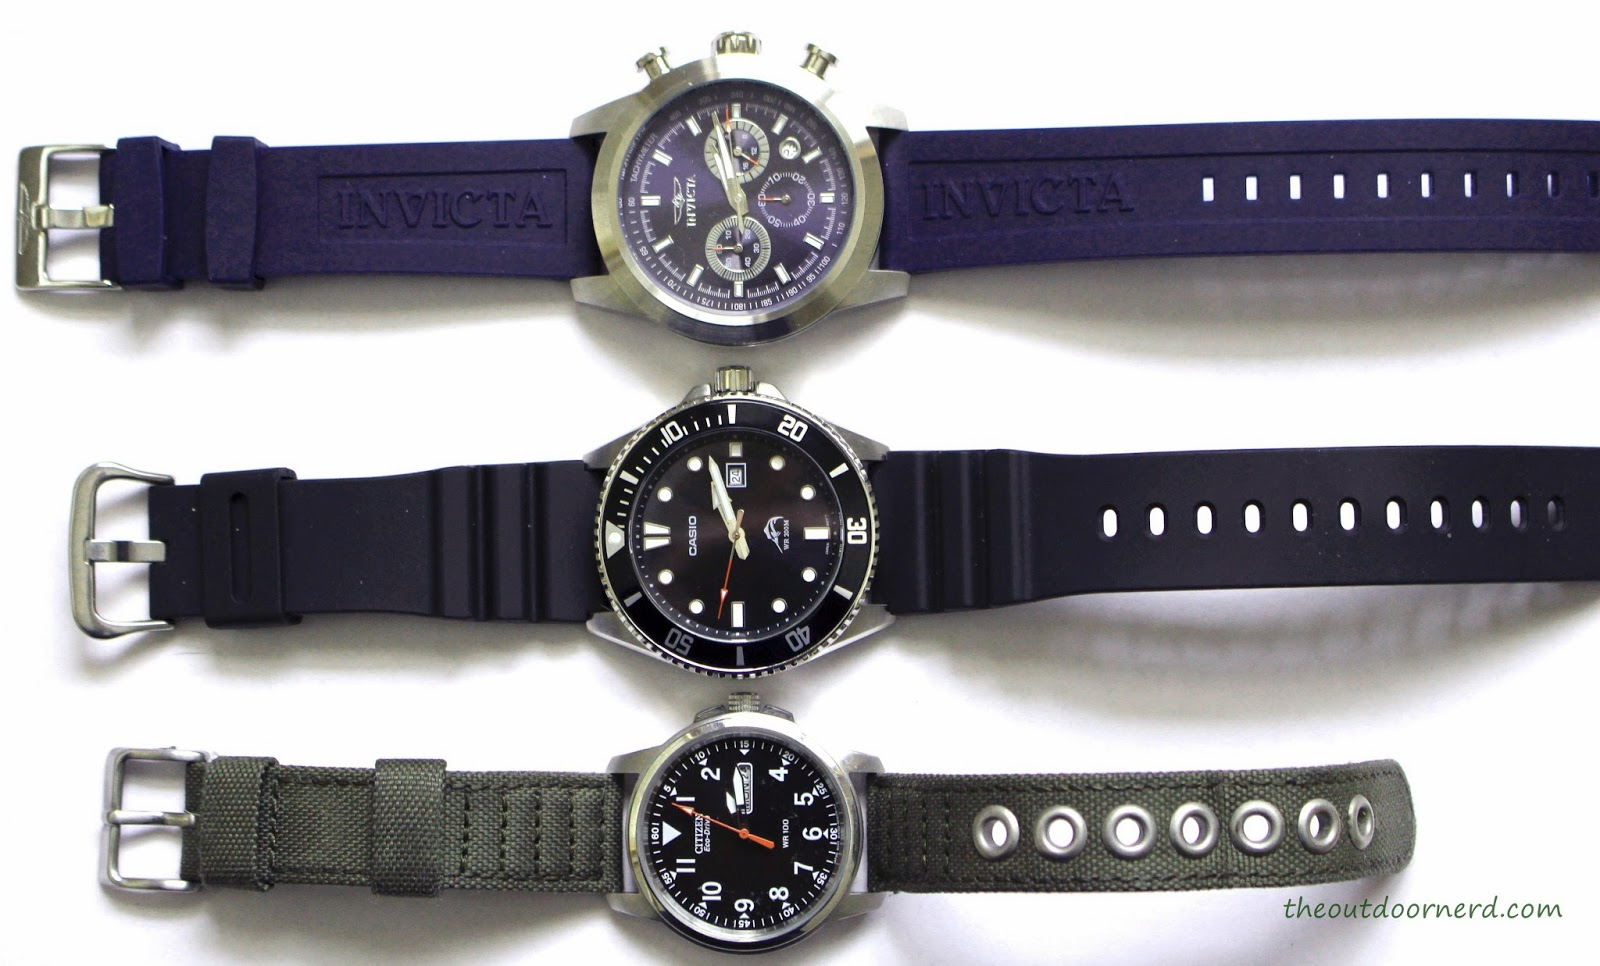 Casio MDV106-1A Diver's Watch: Shown With Citizen and Invicta Watches